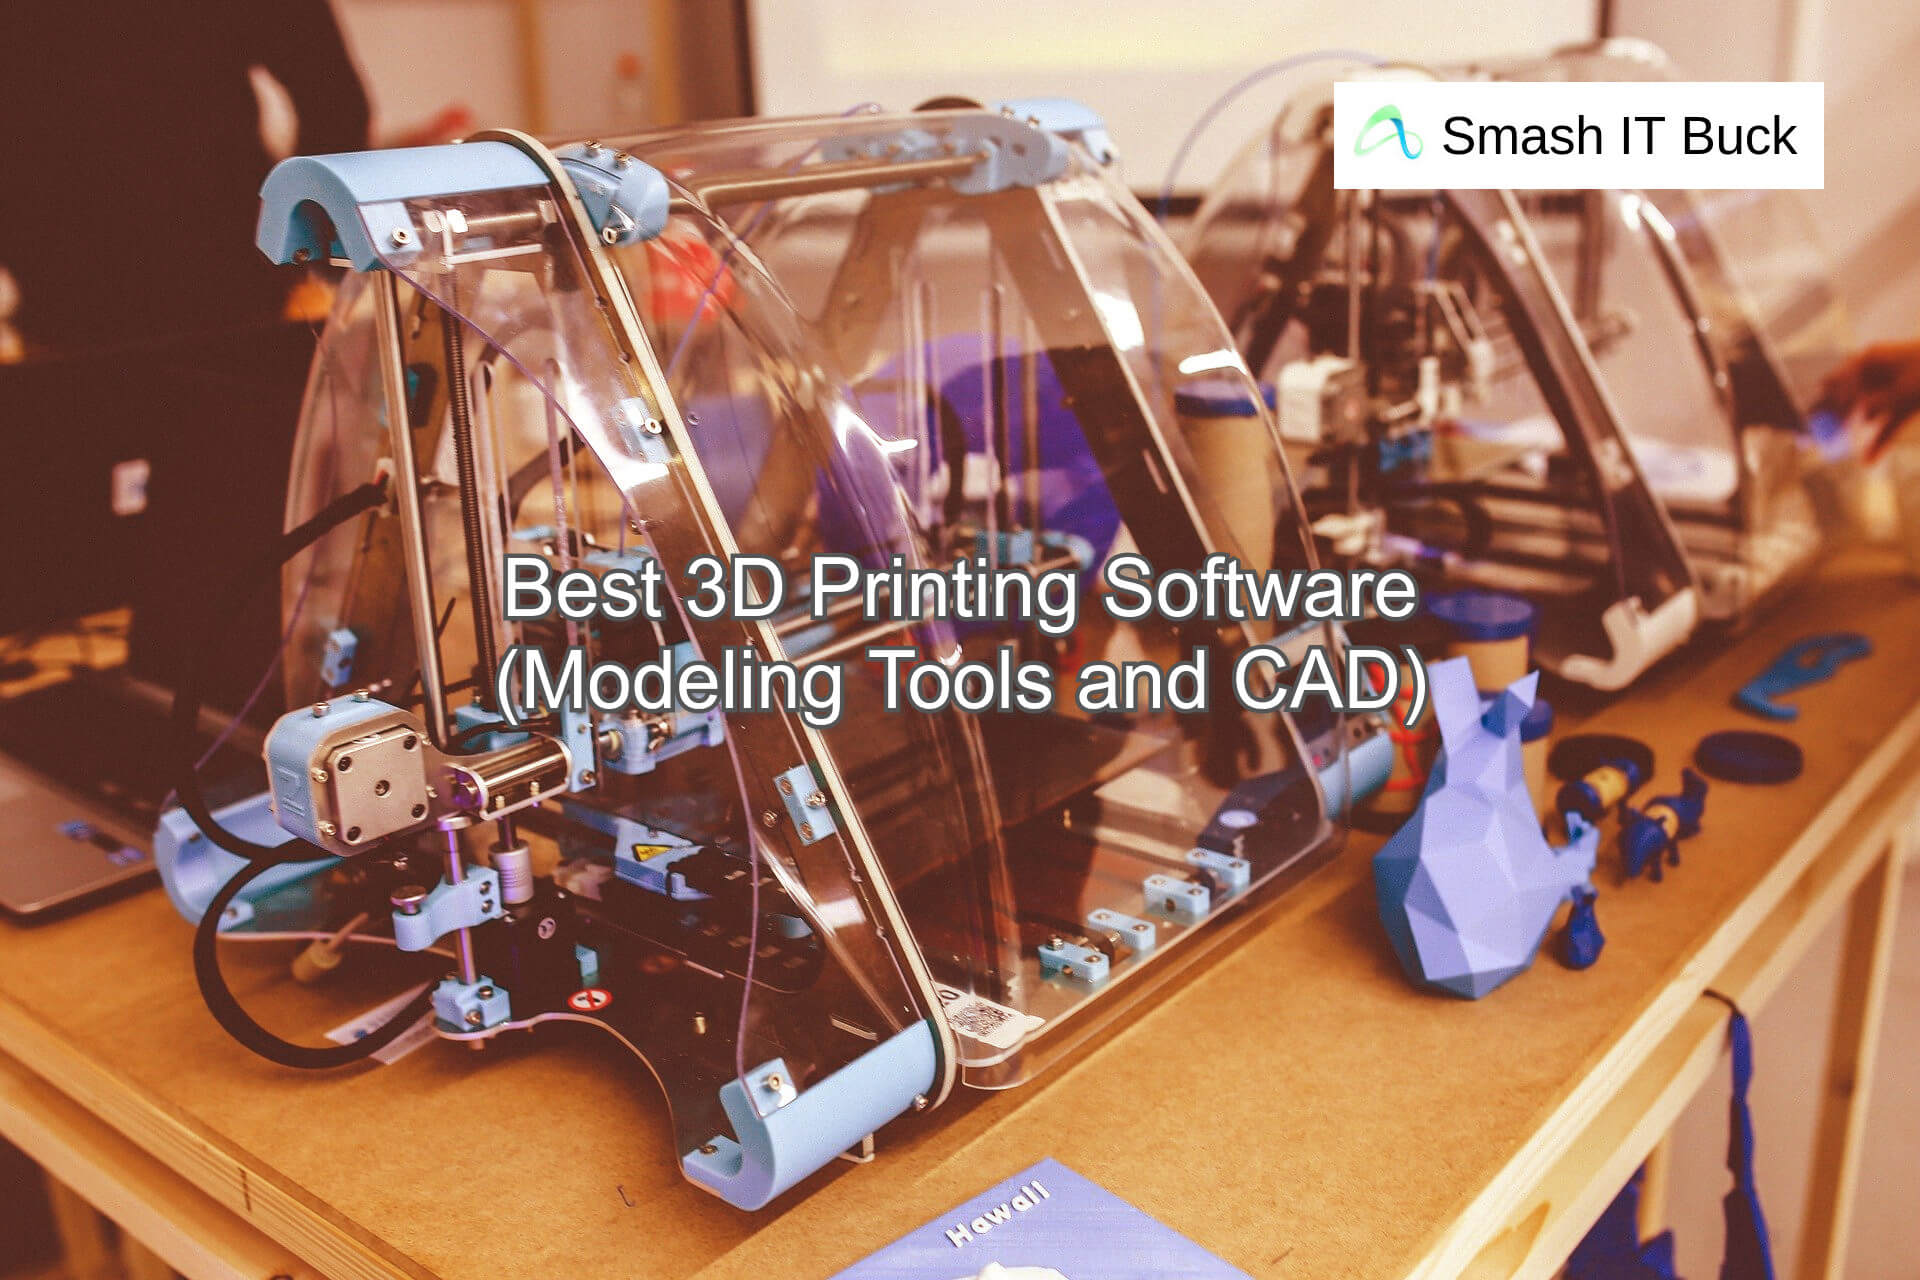 Best 3D Printing Software of 2021 (Modeling Tools and CAD)